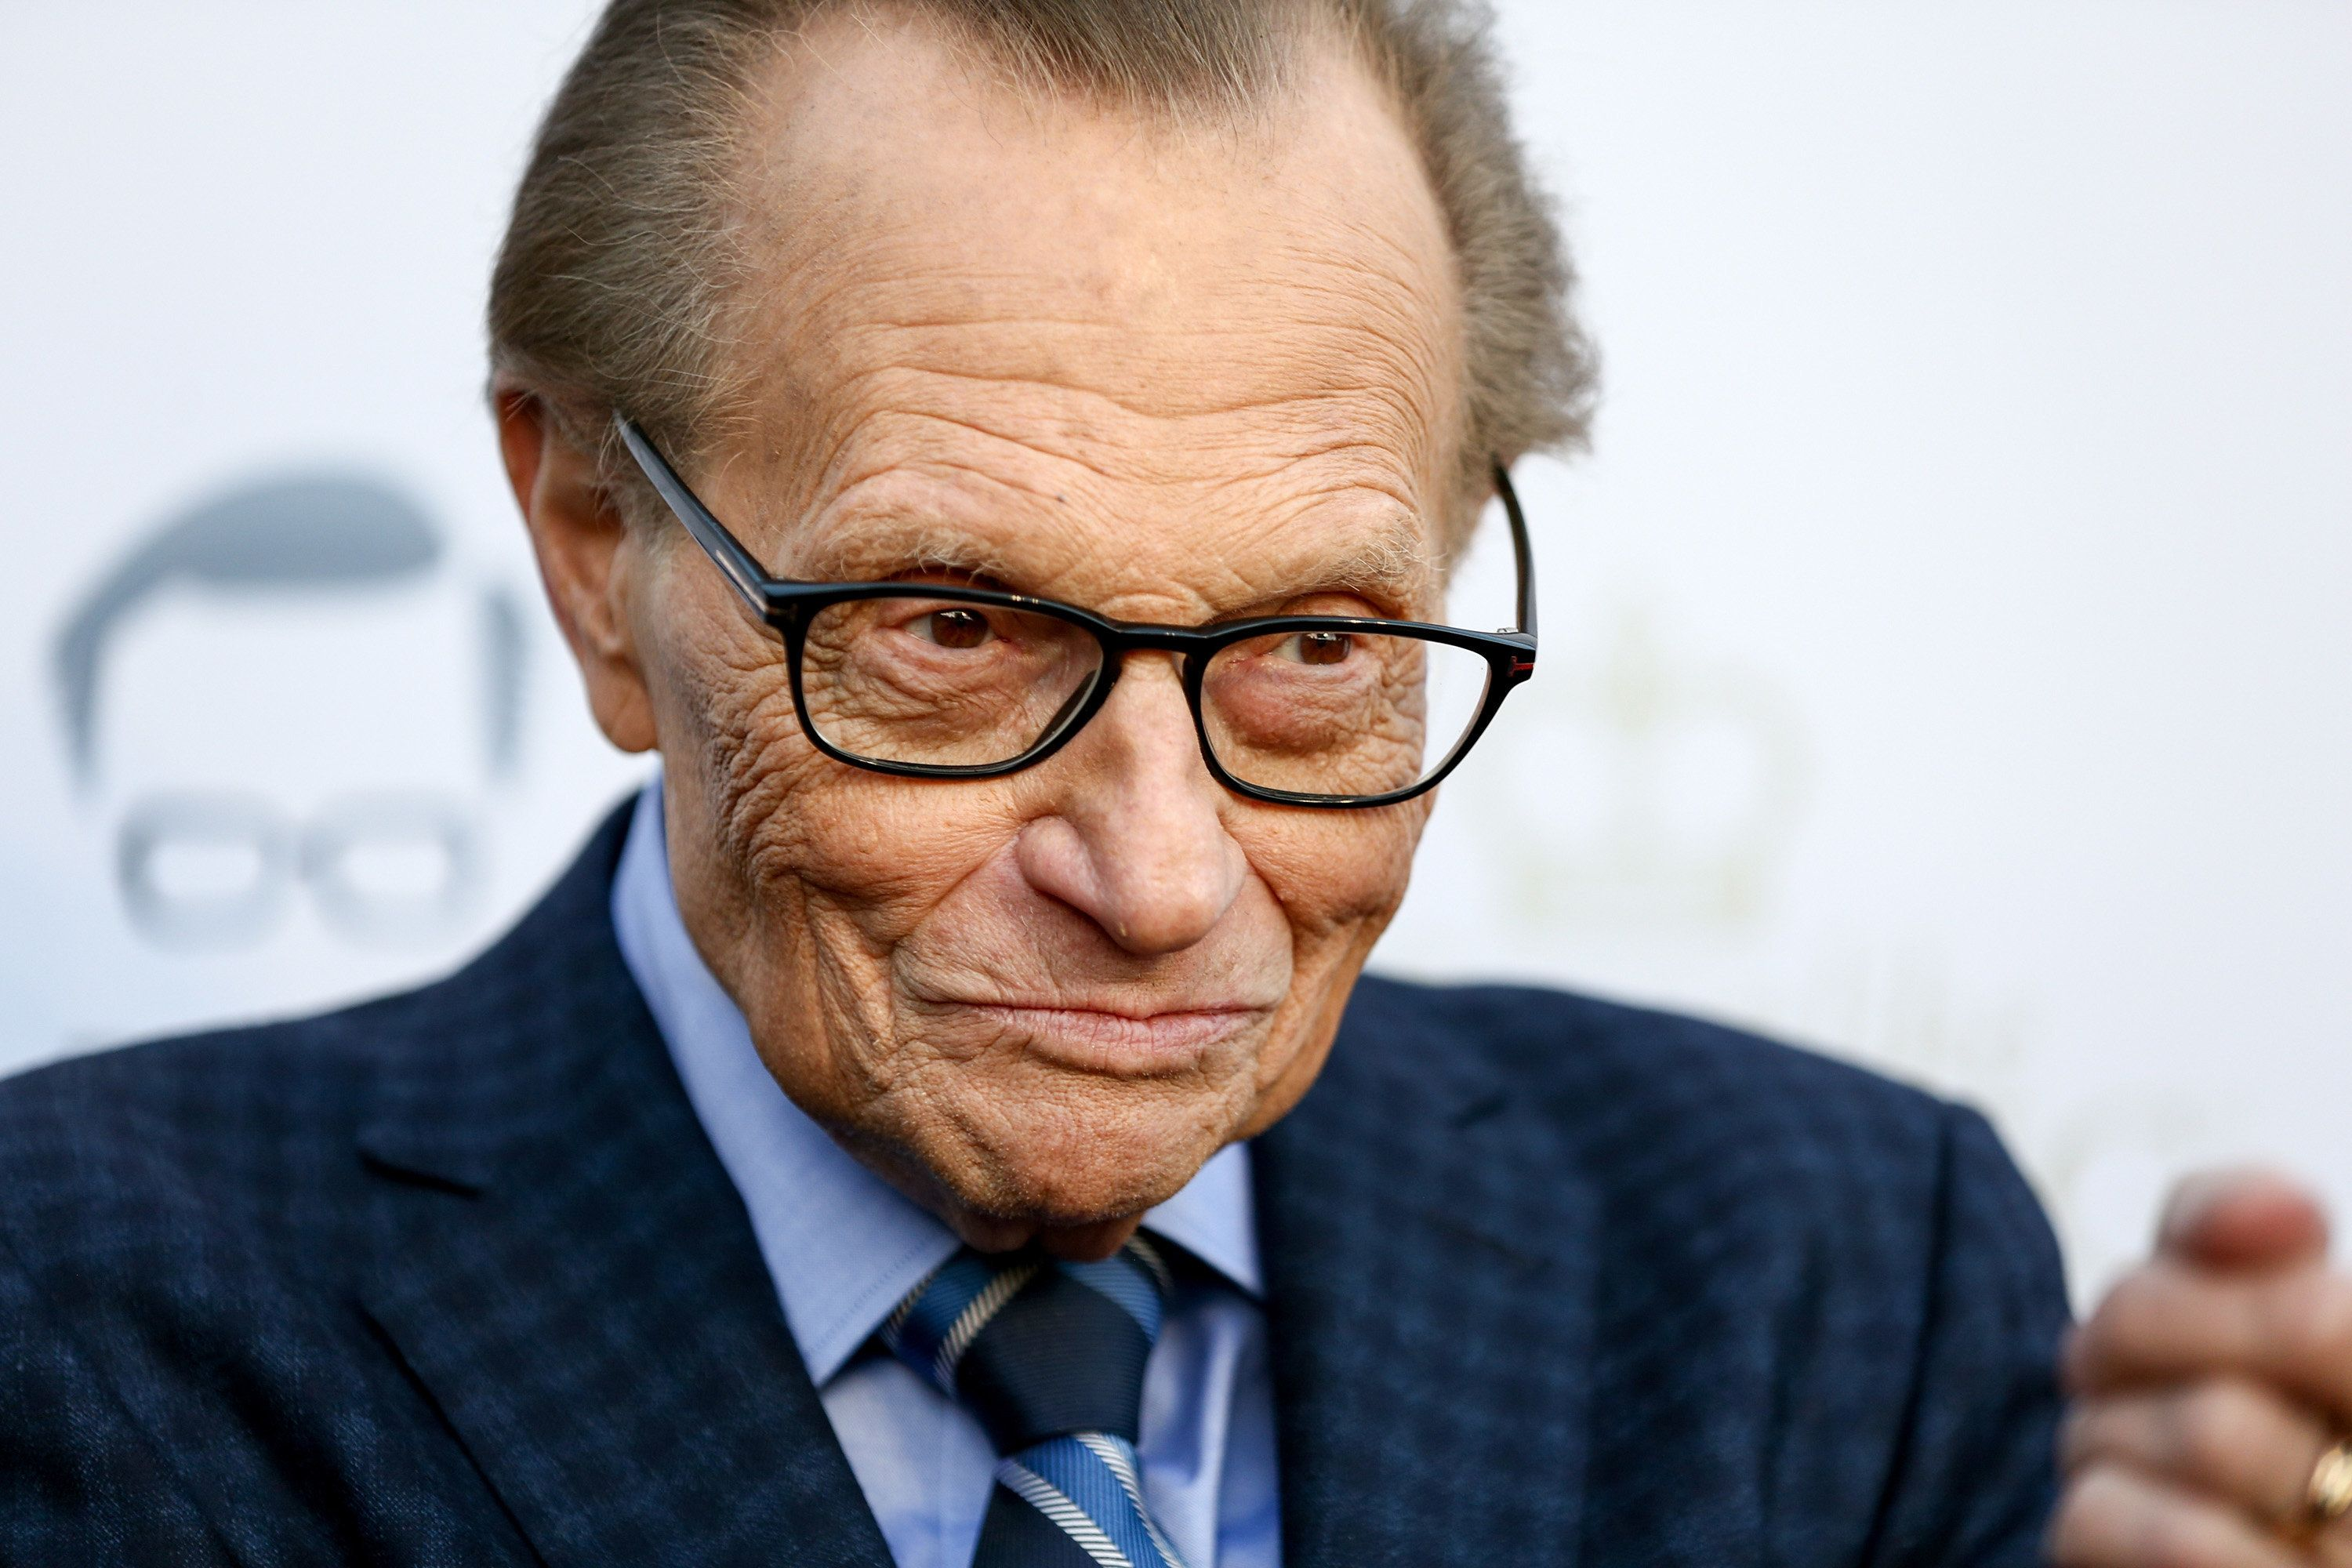 WEST HOLLYWOOD, CA - MAY 01:  Television and radio host Larry King attends Larry King's 60th Broadcasting Anniversary Event at HYDE Sunset: Kitchen + Cocktails on May 1, 2017 in West Hollywood, California.  (Photo by Rich Fury/Getty Images)